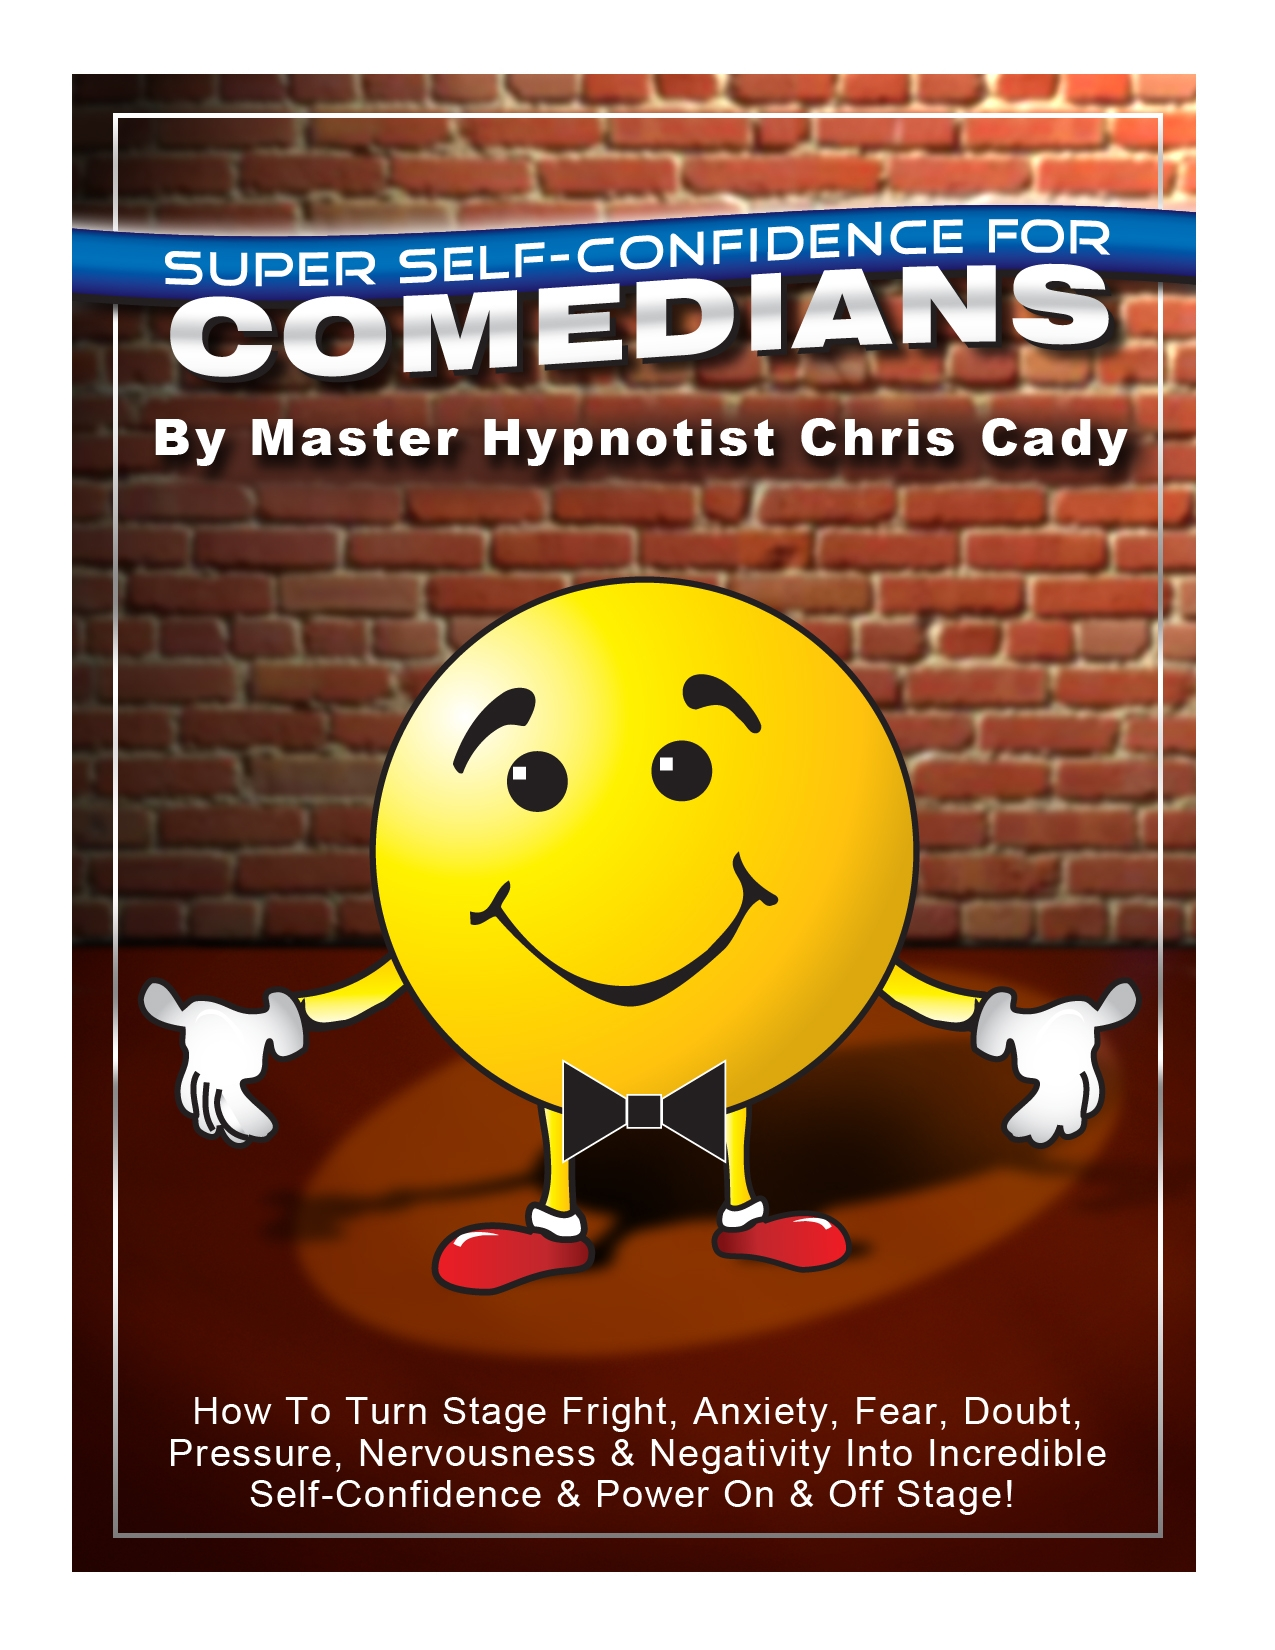 hypnosis cd and book cover for self confidence for comedians with hypnosis